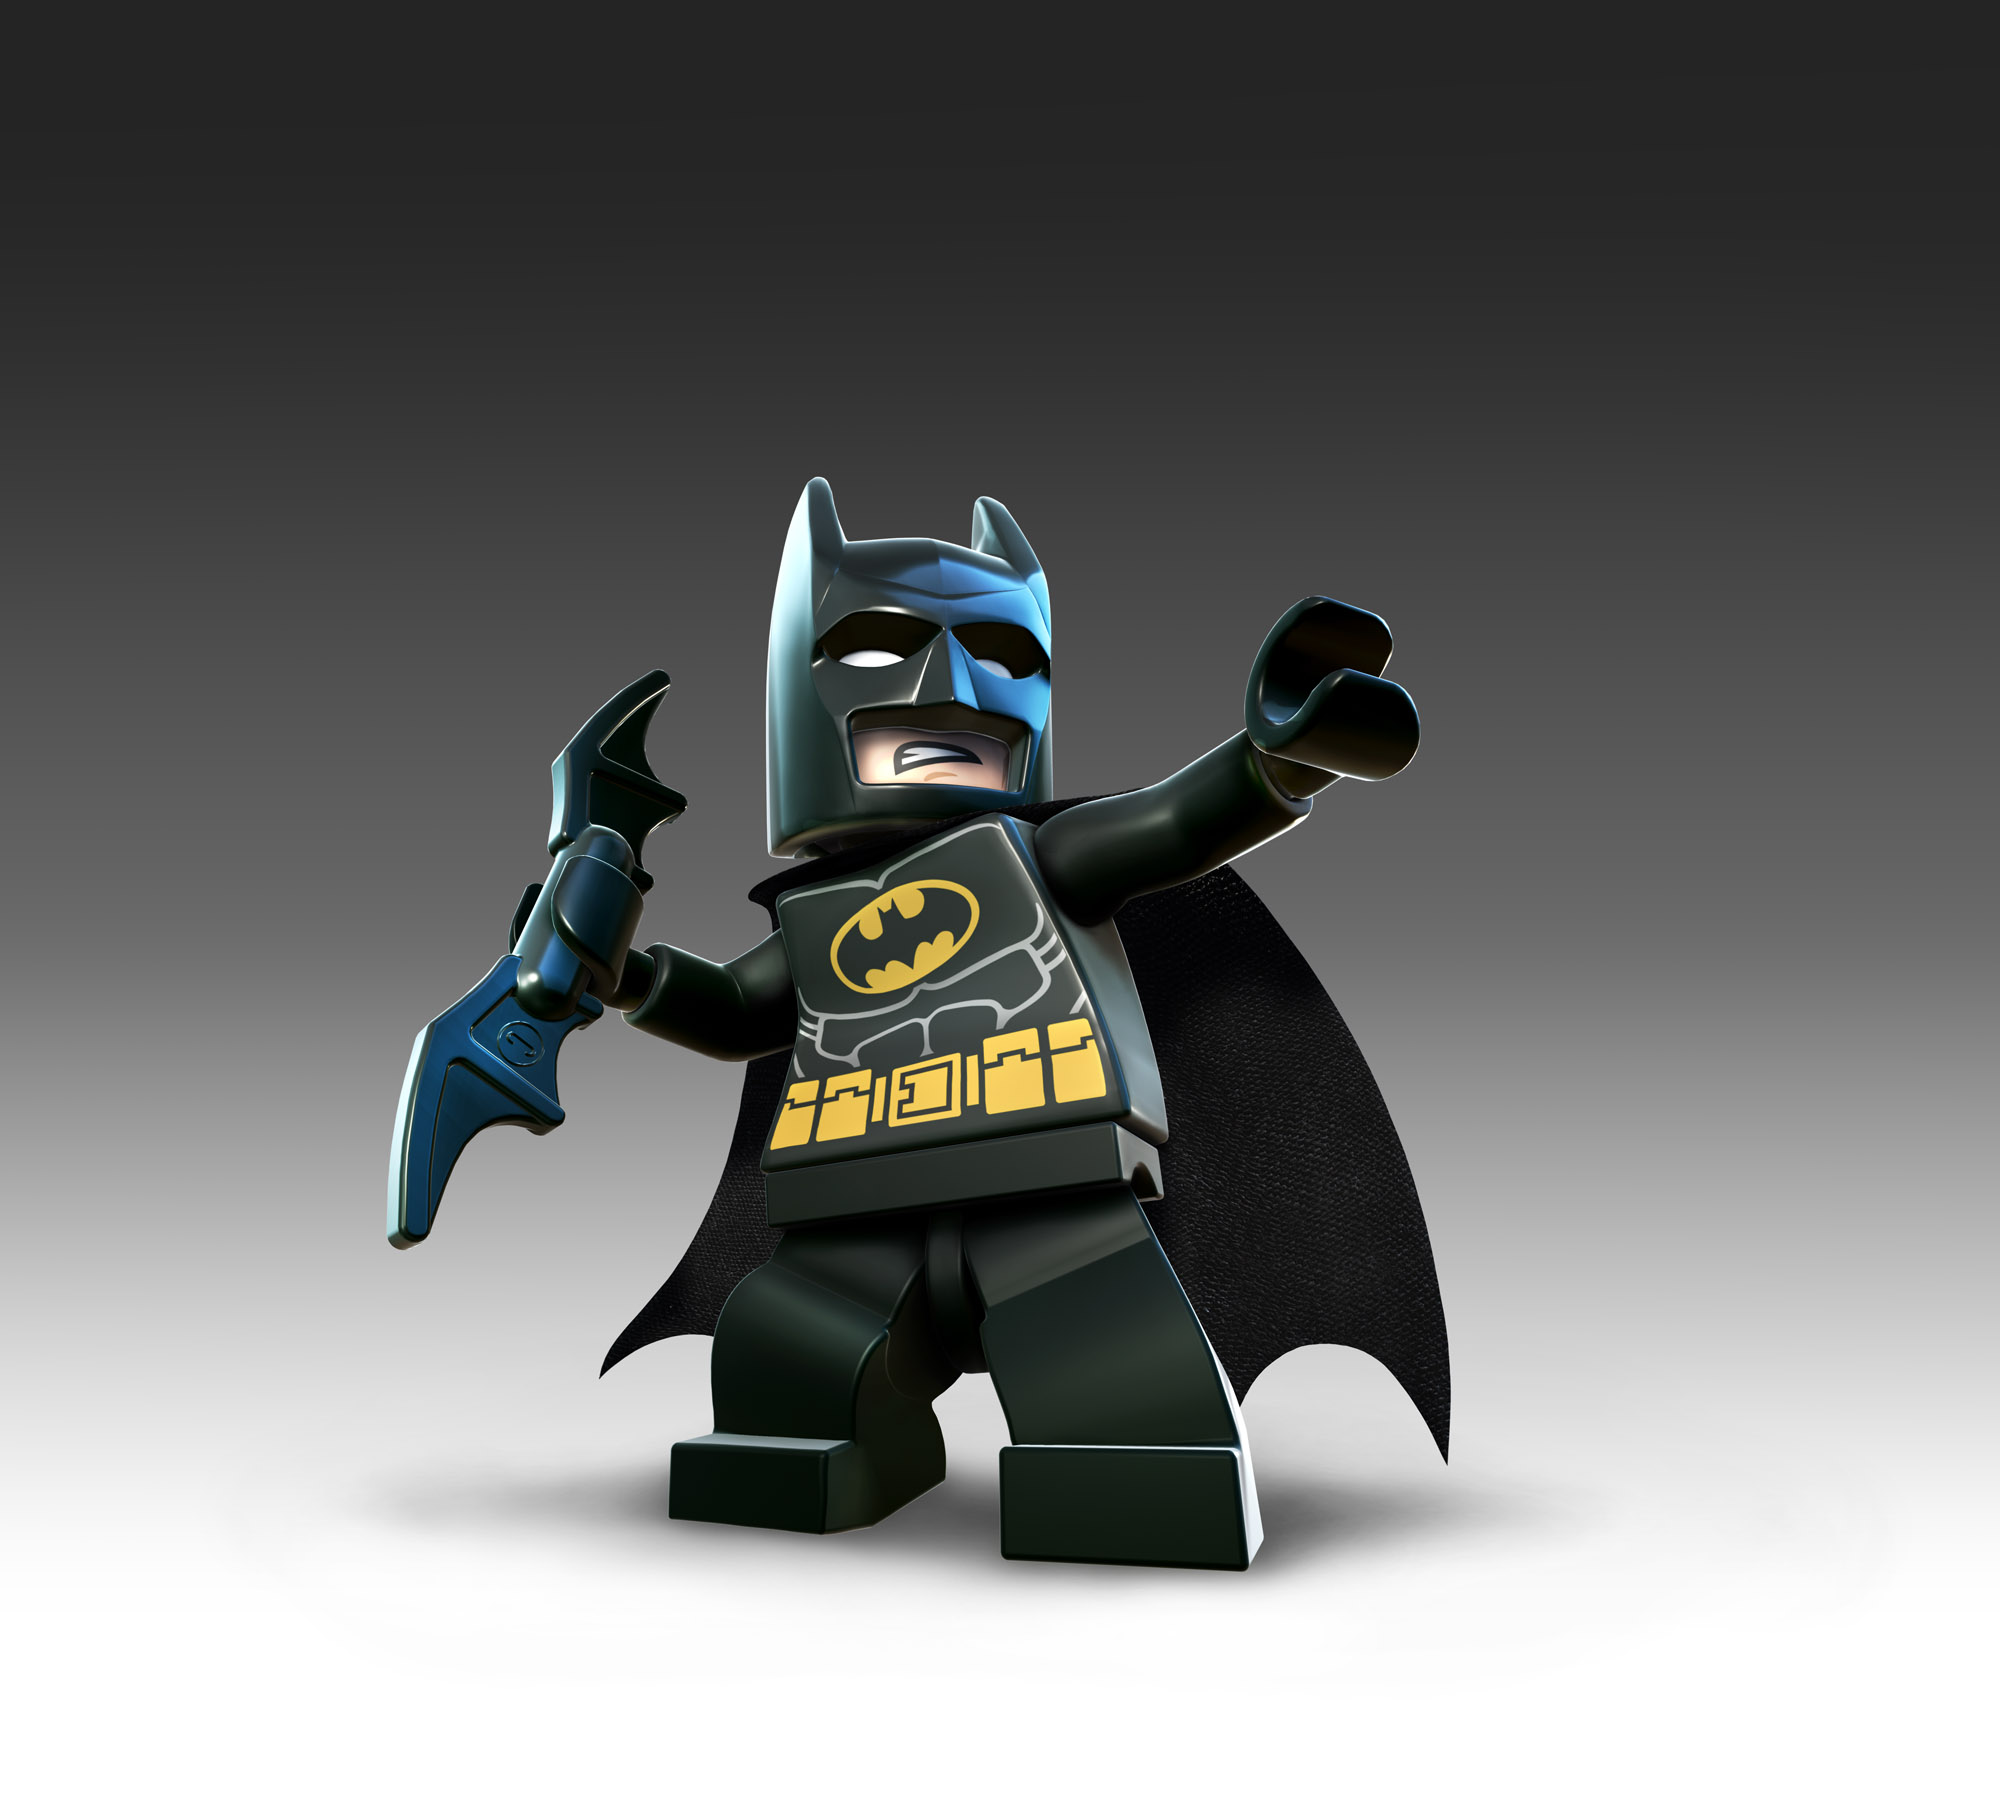 Lego Battles! Lego Batman Vs Lego Deadpool, Lego Batman Free.